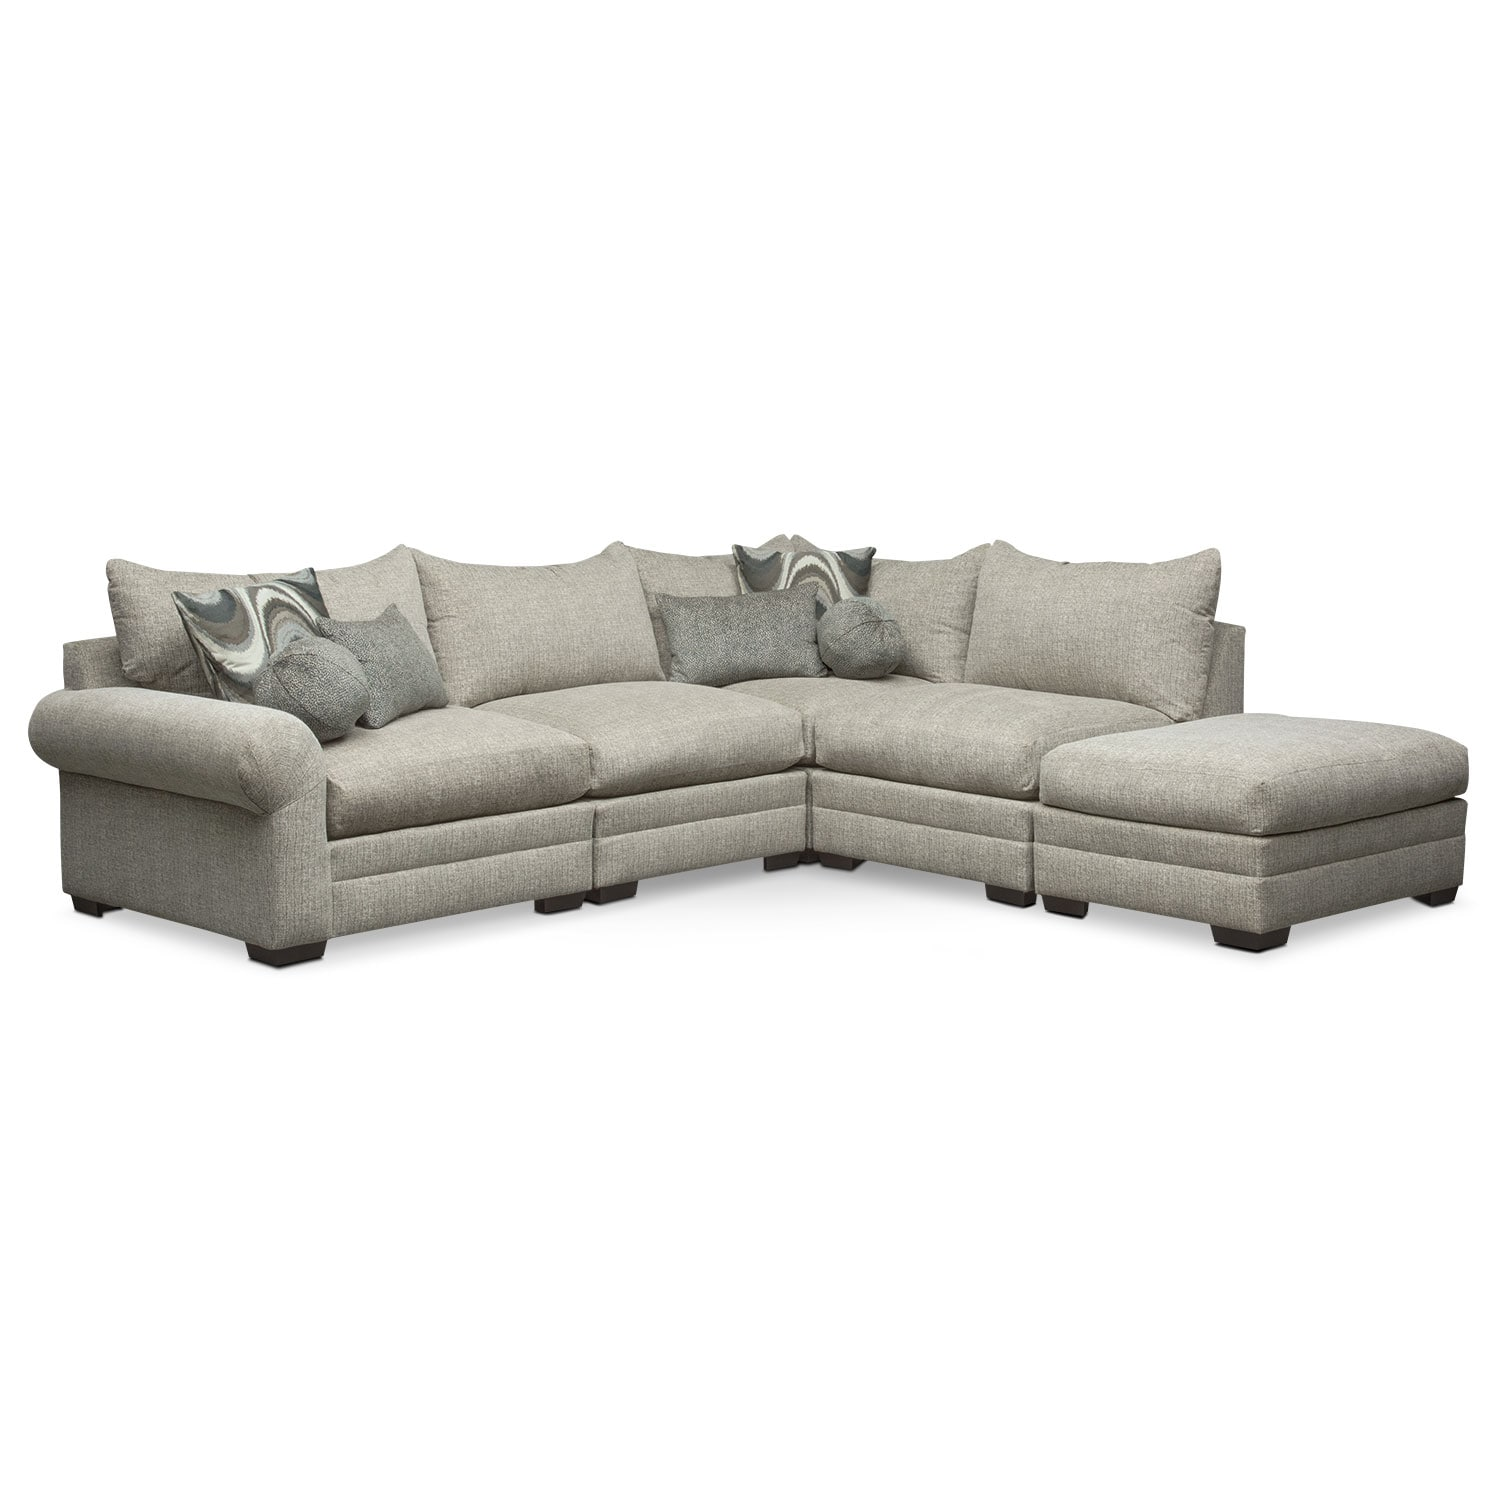 Living Room Furniture - Wilshire 5-Piece Right-Facing Sectional - Gray